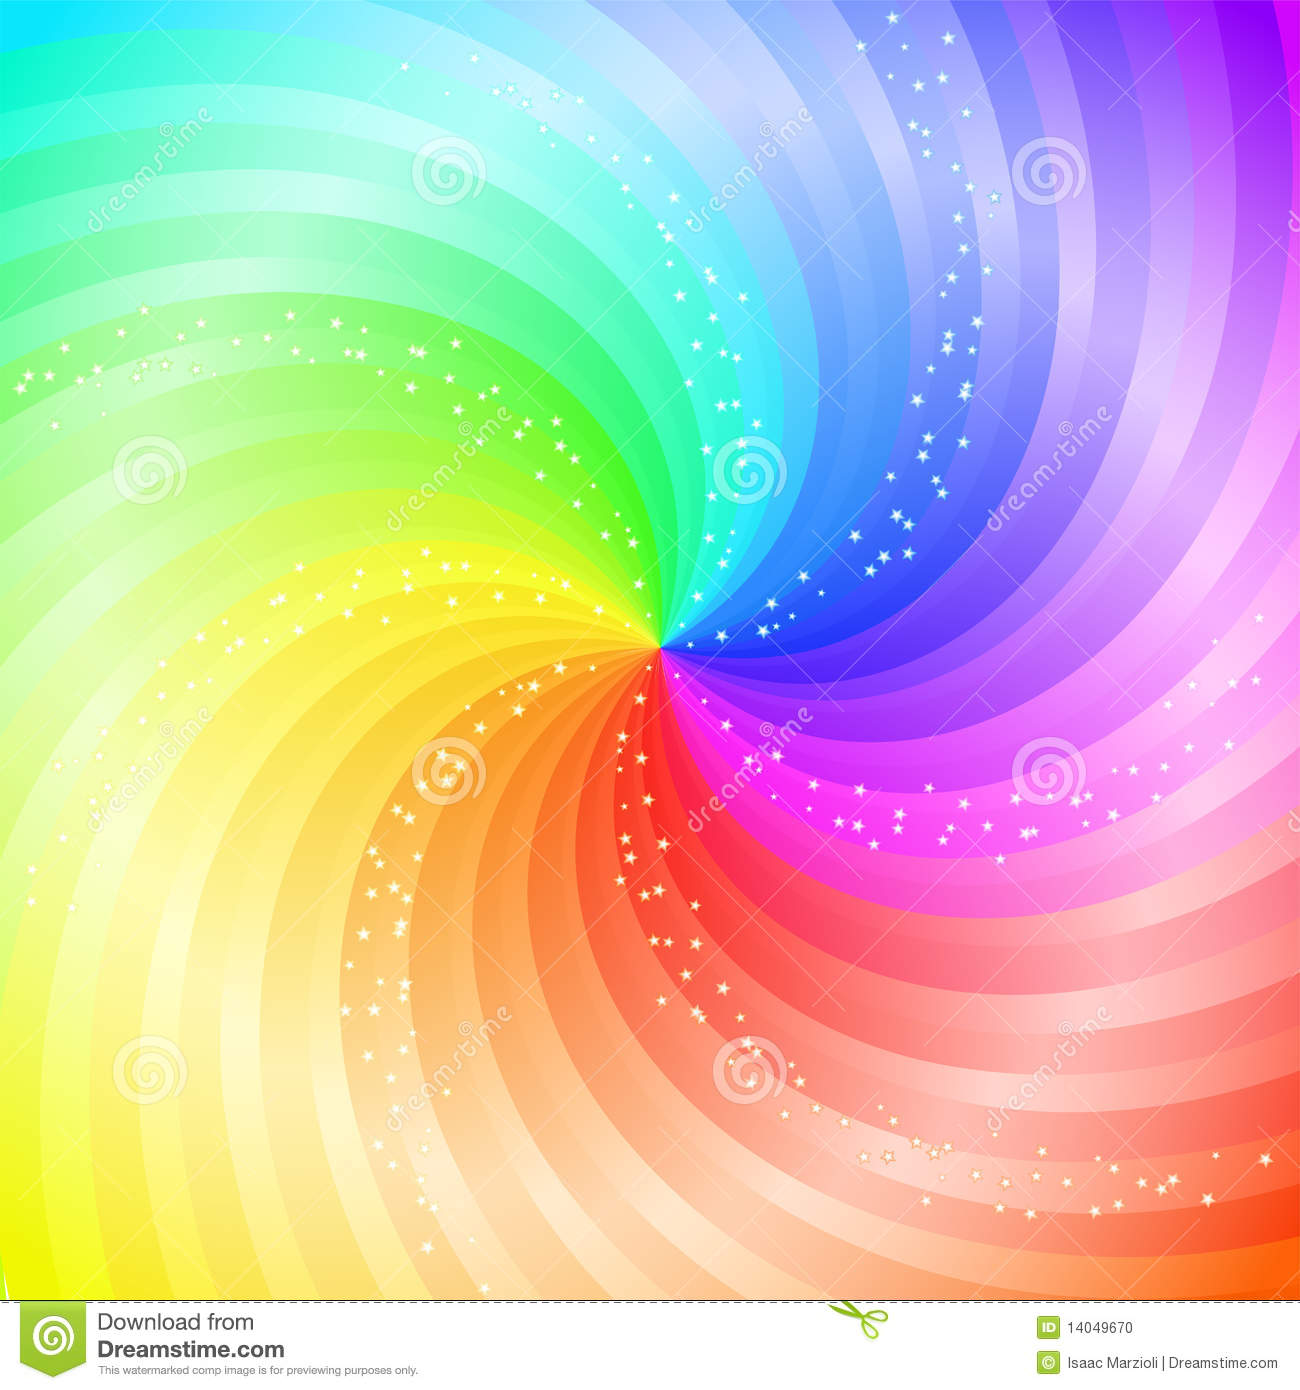 Abstract Swirling Rainbow Background Stock Vector